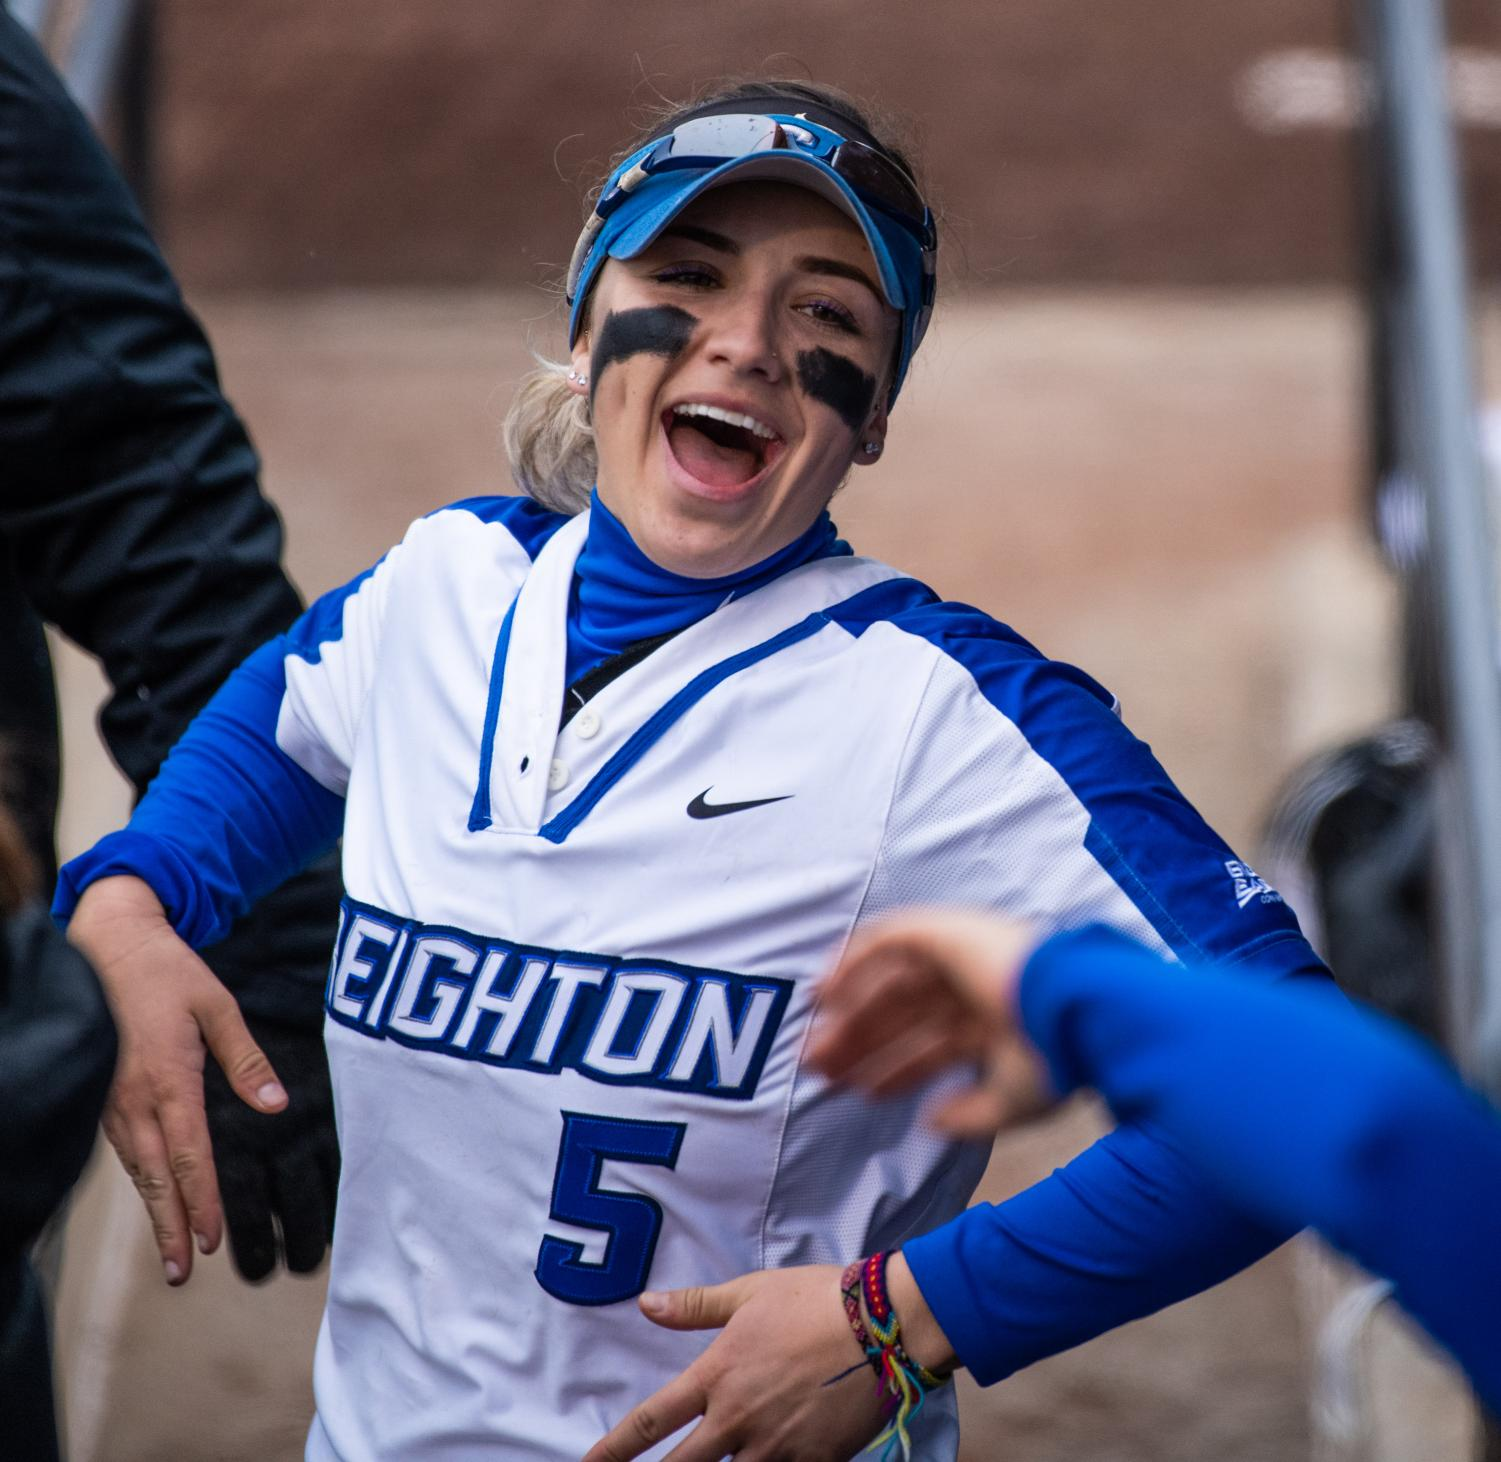 Jay+junior+Ashley+Cantu+celebrates+with+her+team+on+Friday%2C+Feb.+22%2C+2019+during+the+Salukis+1-0+win+against+the+Creighton+Jays+at+Charlotte+West+Stadium.